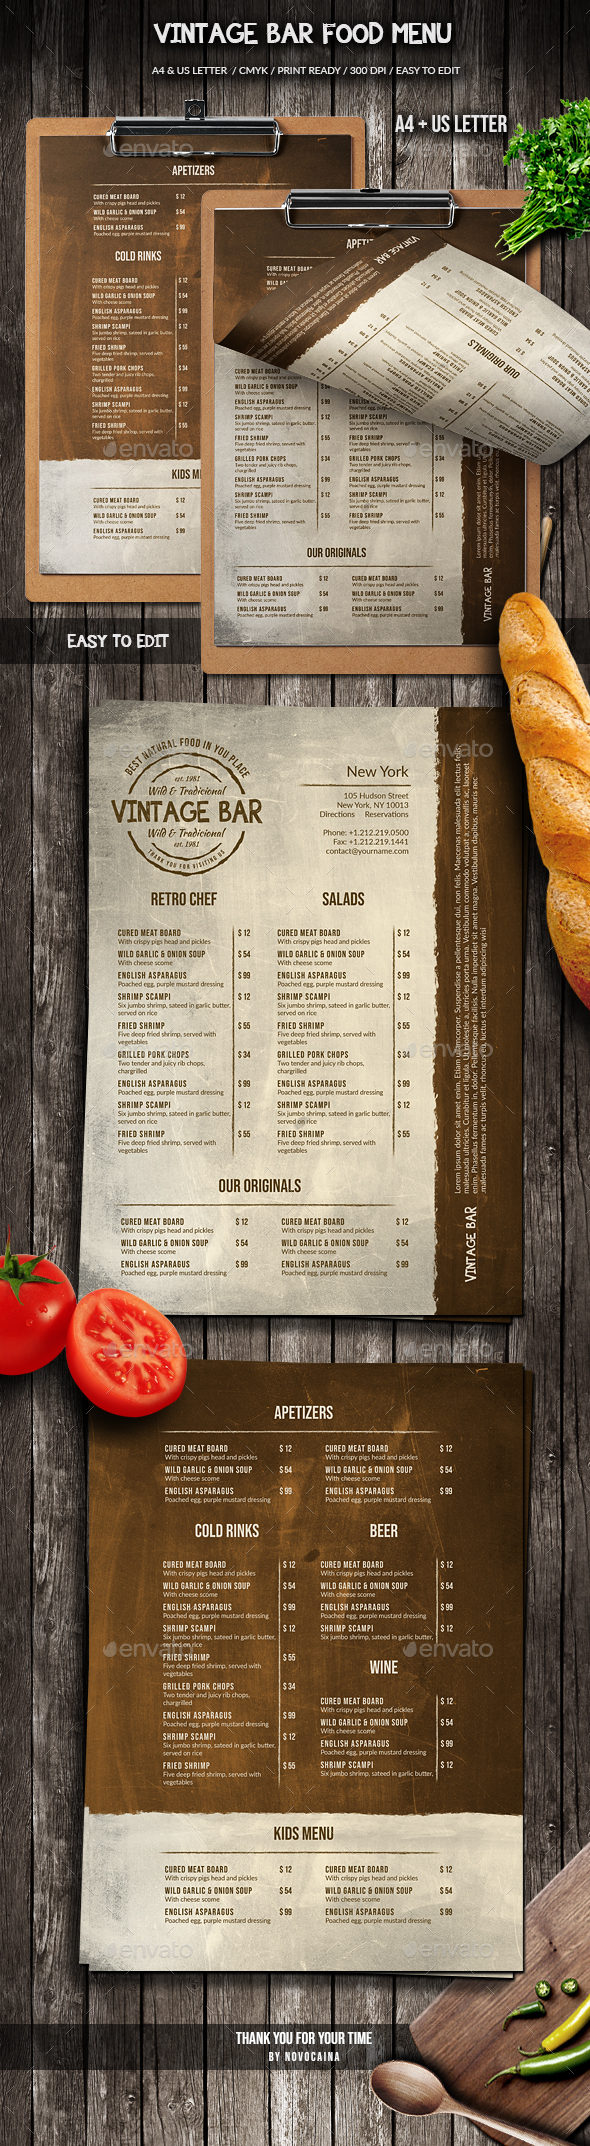 Vintage Bar Food Menu Design A4 & US Letter